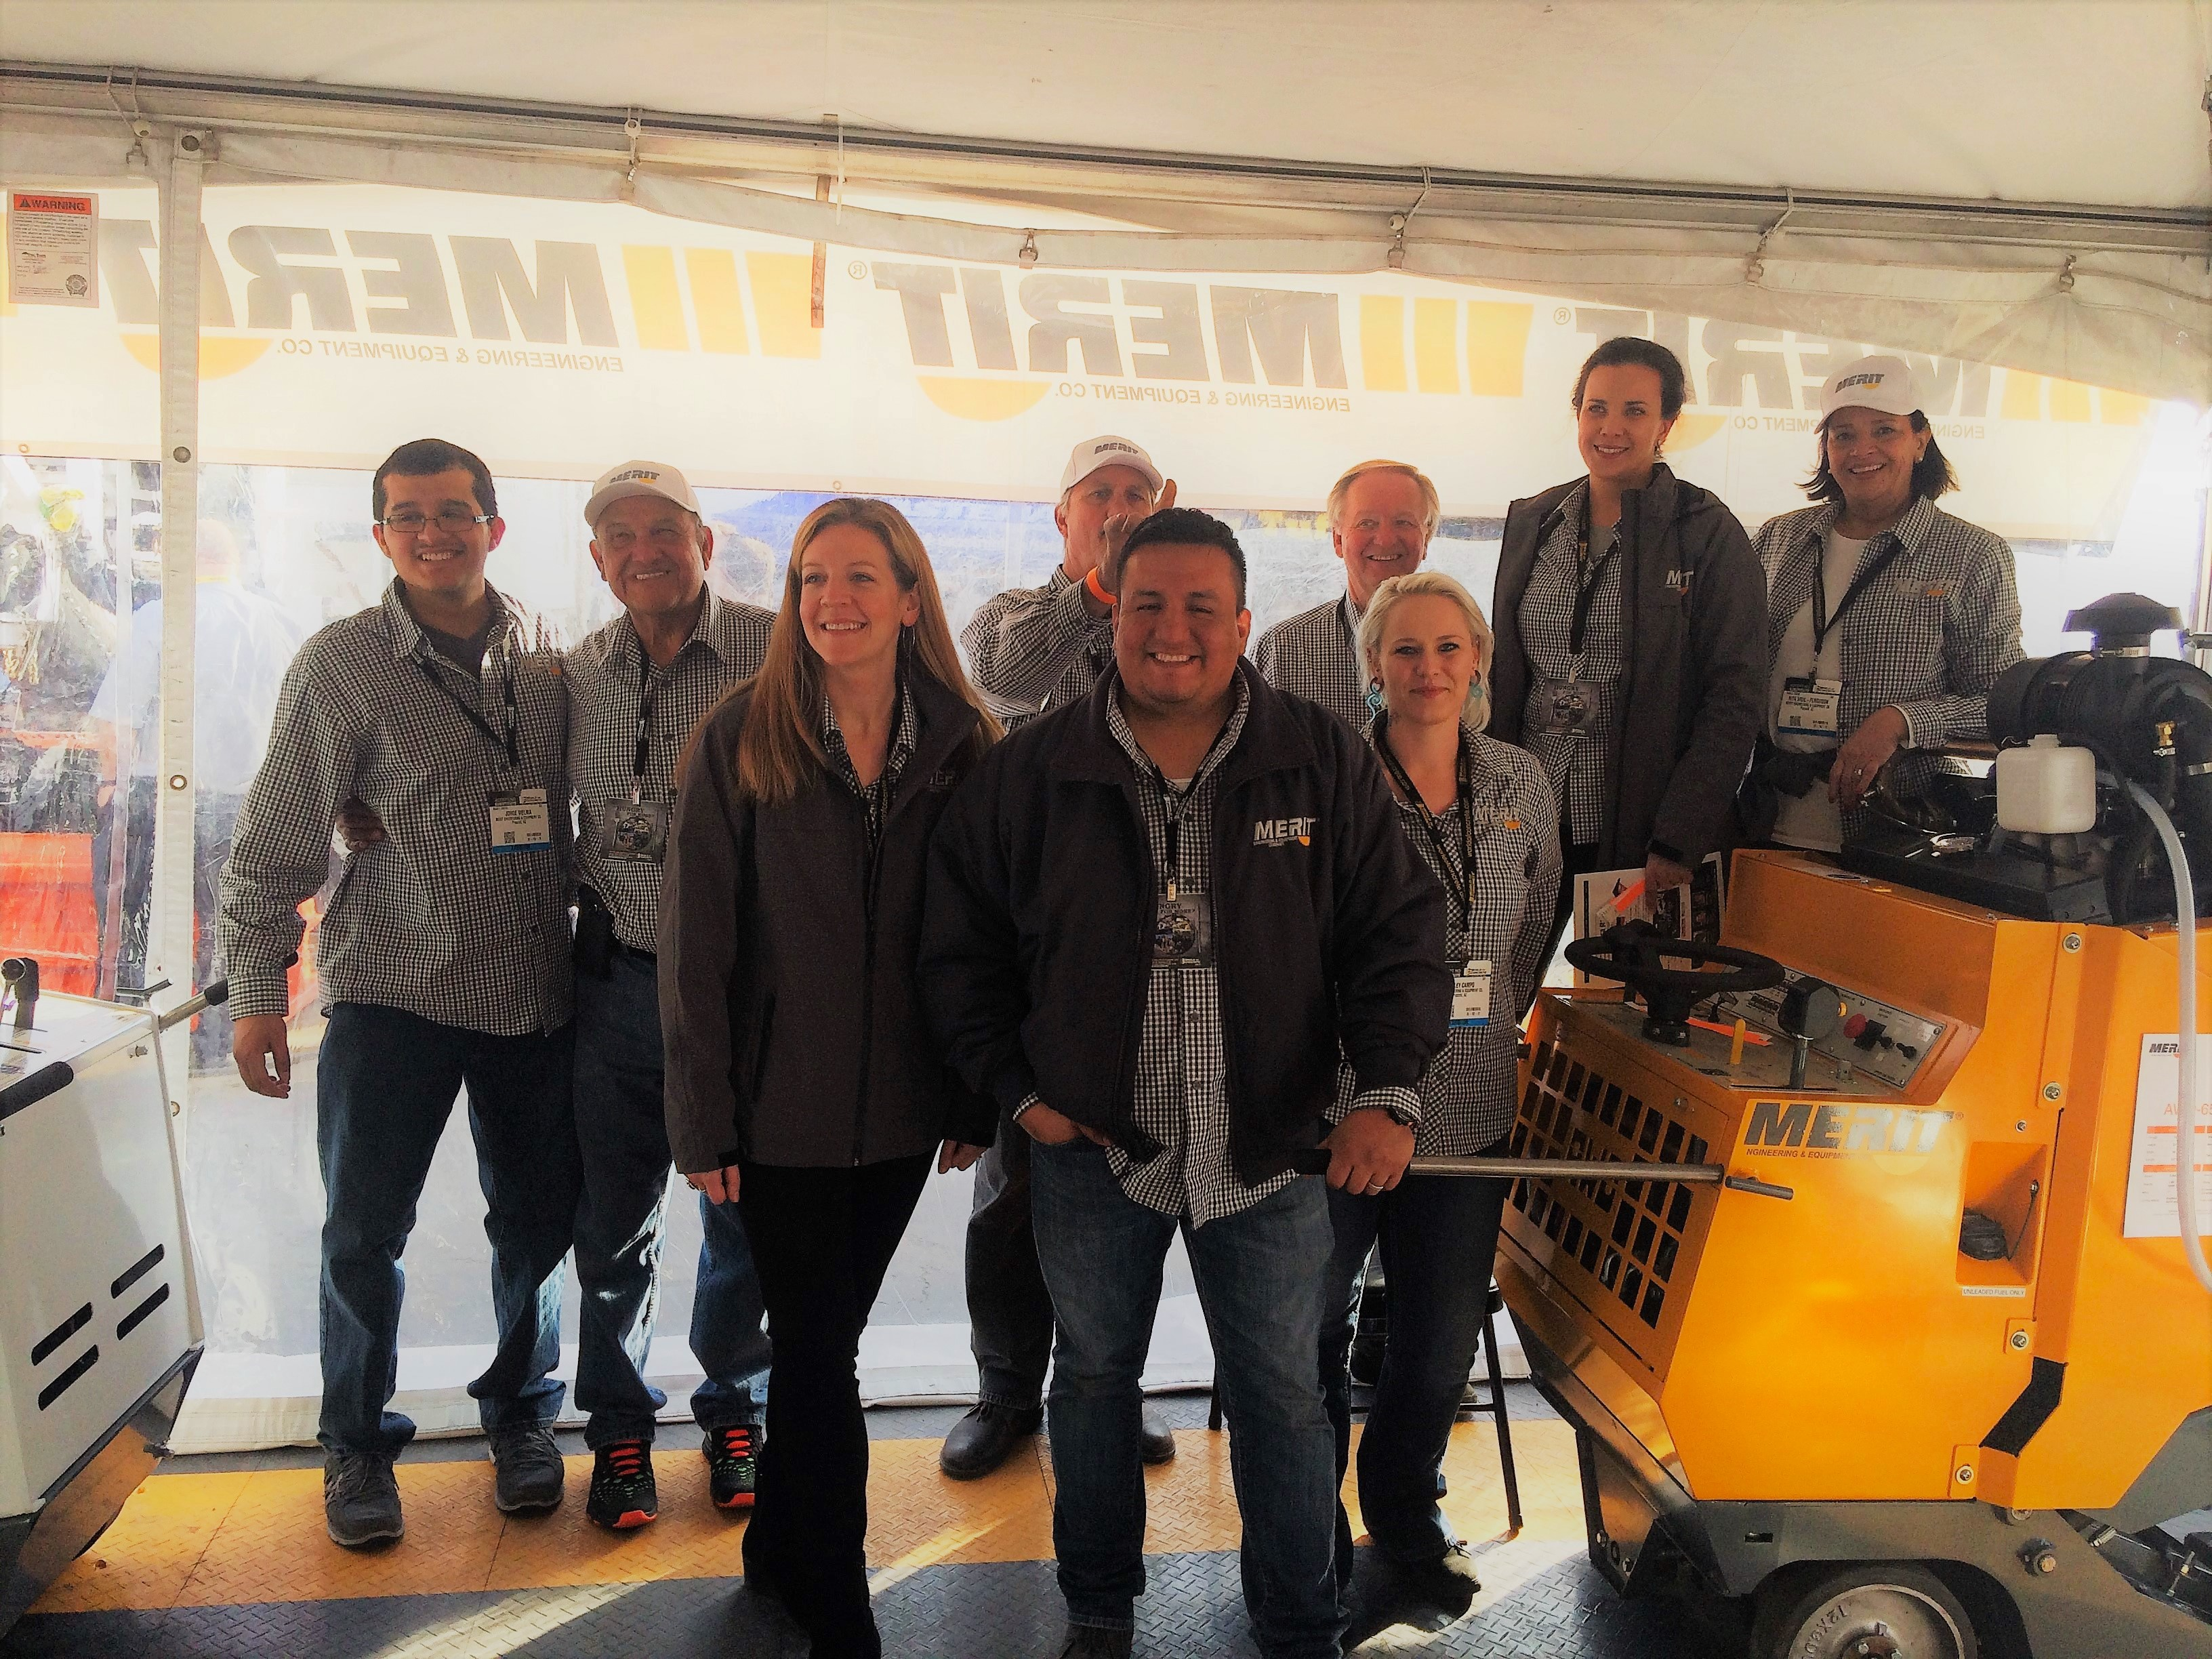 Merit Saw staff and distributors pose at Merit's outdoor booth at the 2017 World of Concrete Show.